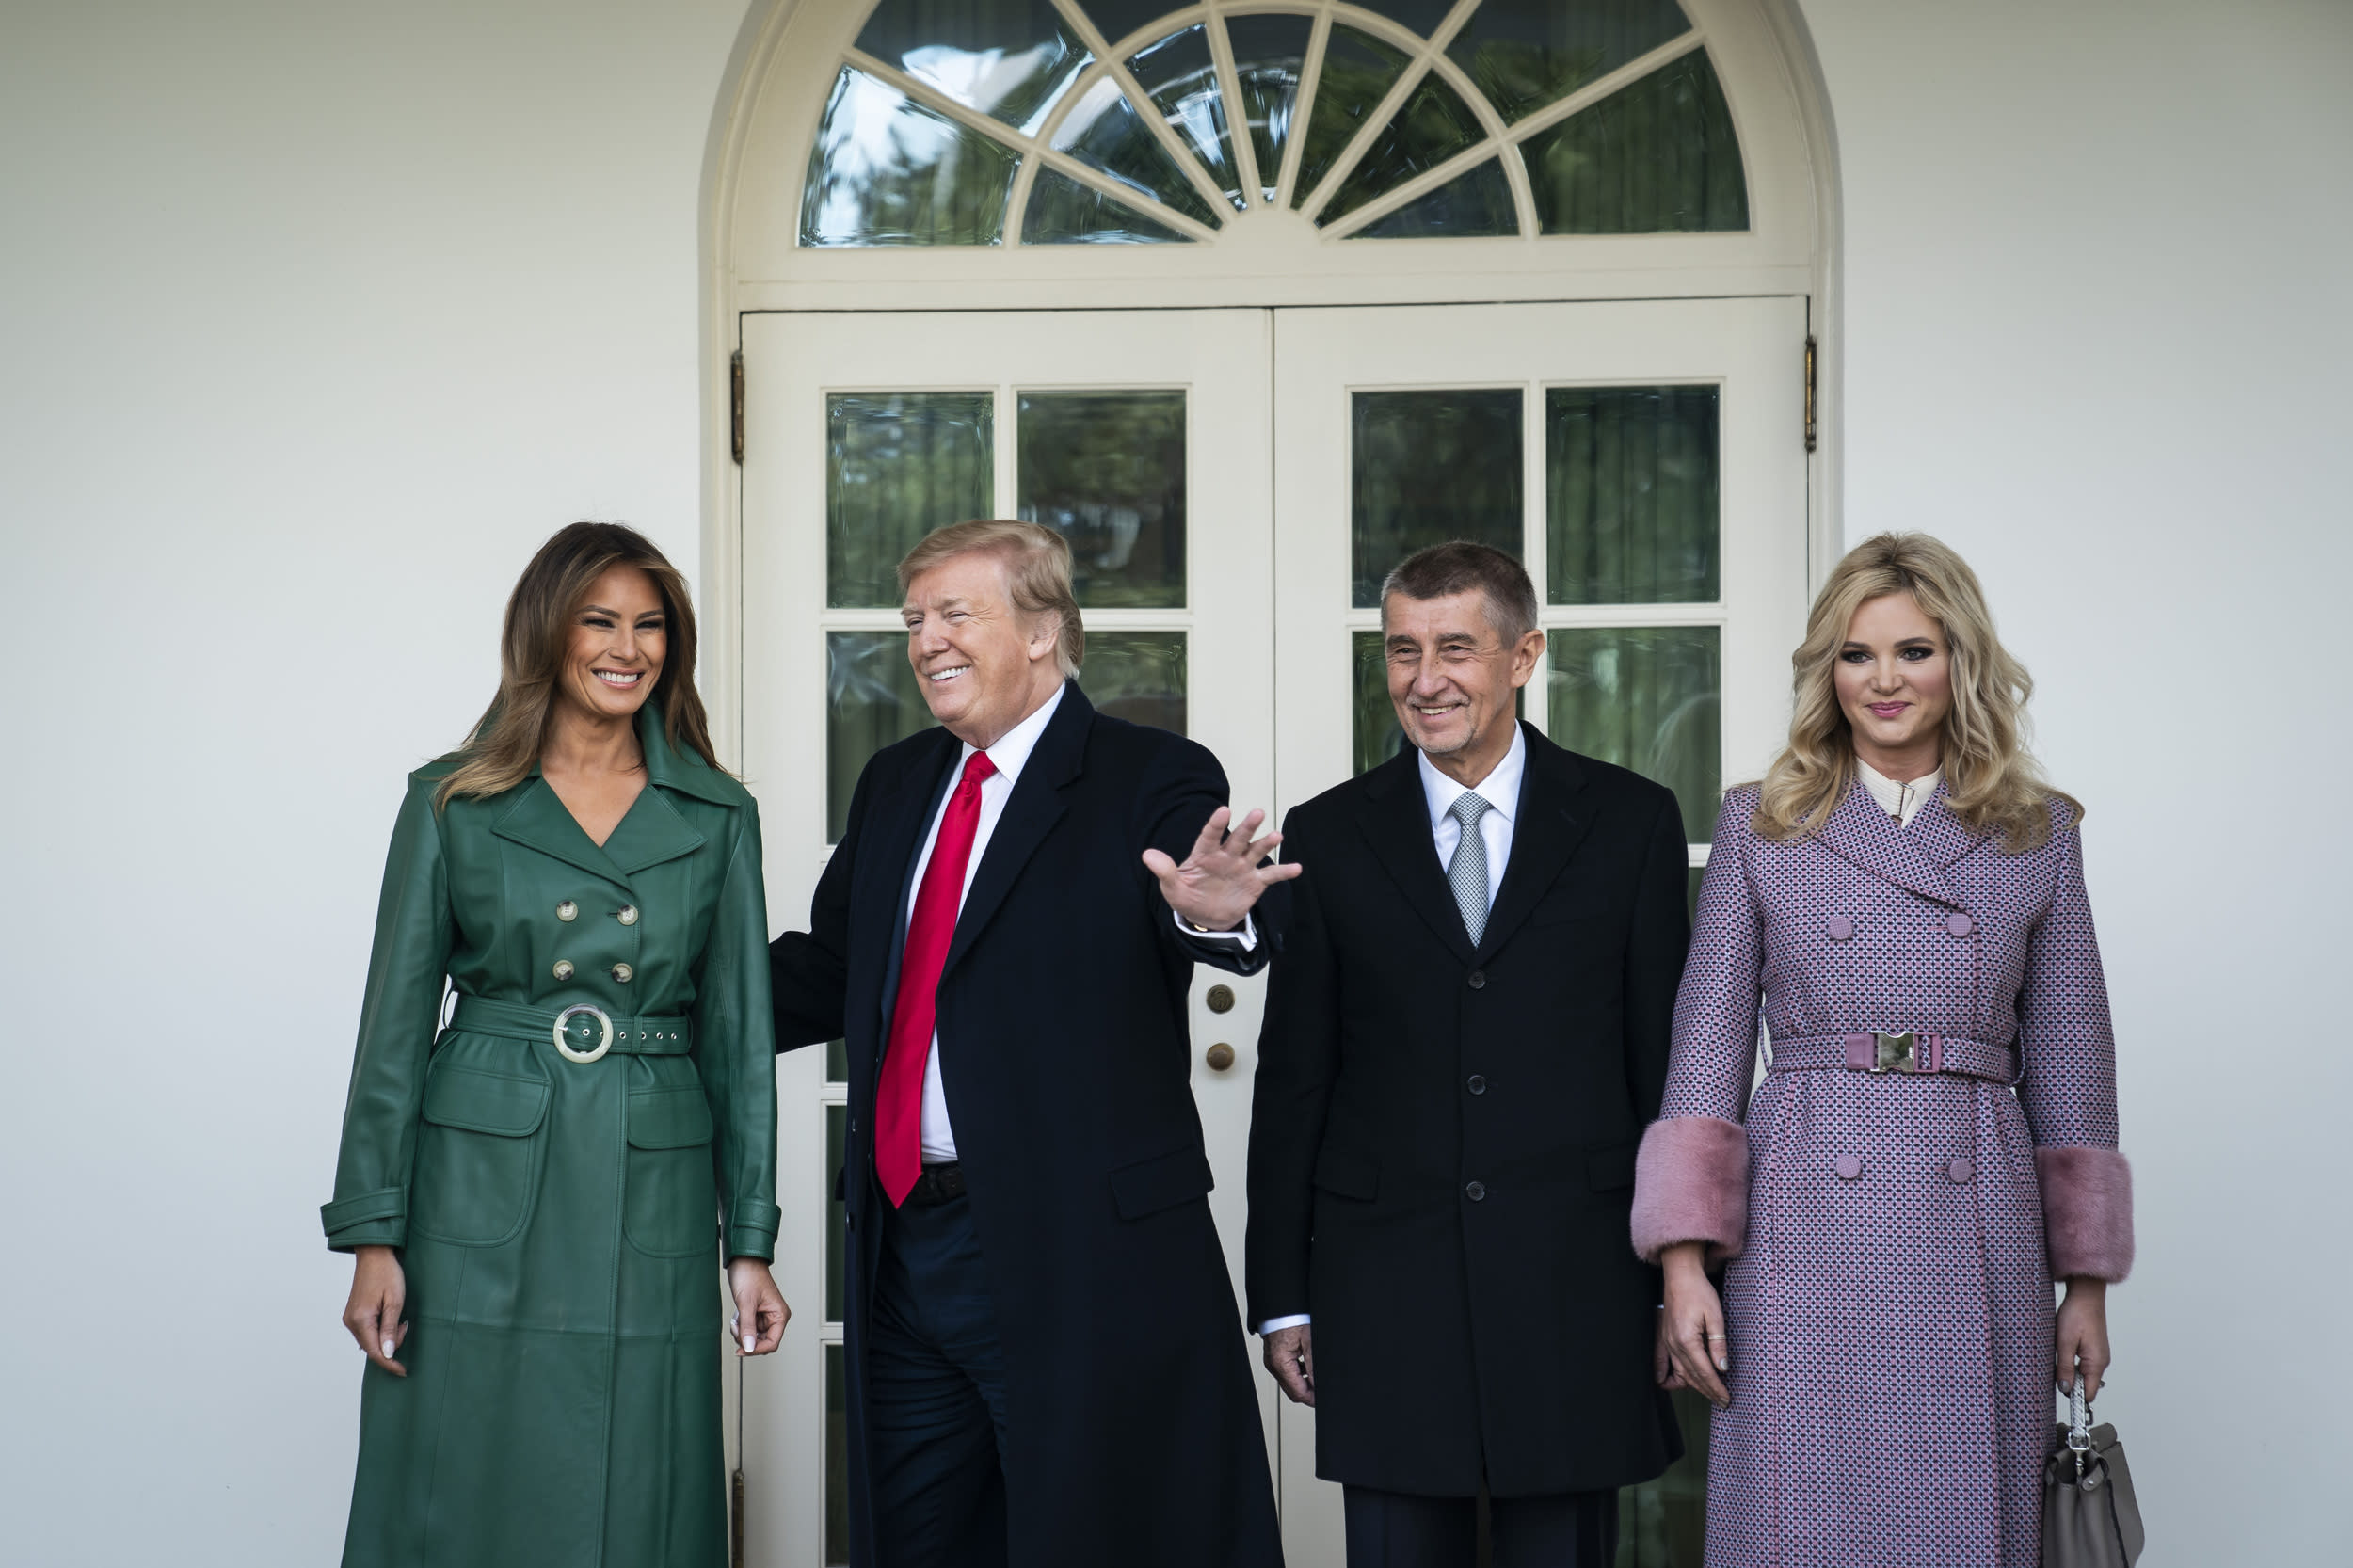 WASHINGTON, DC - MARCH 7 : President Donald J. Trump and First Lady Melania Trump welcome Prime Minister Andrej Babis and Mrs. Monika Babisova of the Czech Republic outside the Oval Office at the White House on Thursday, March 07, 2019 in Washington, DC. (Photo by Jabin Botsford/The Washington Post via Getty Images)